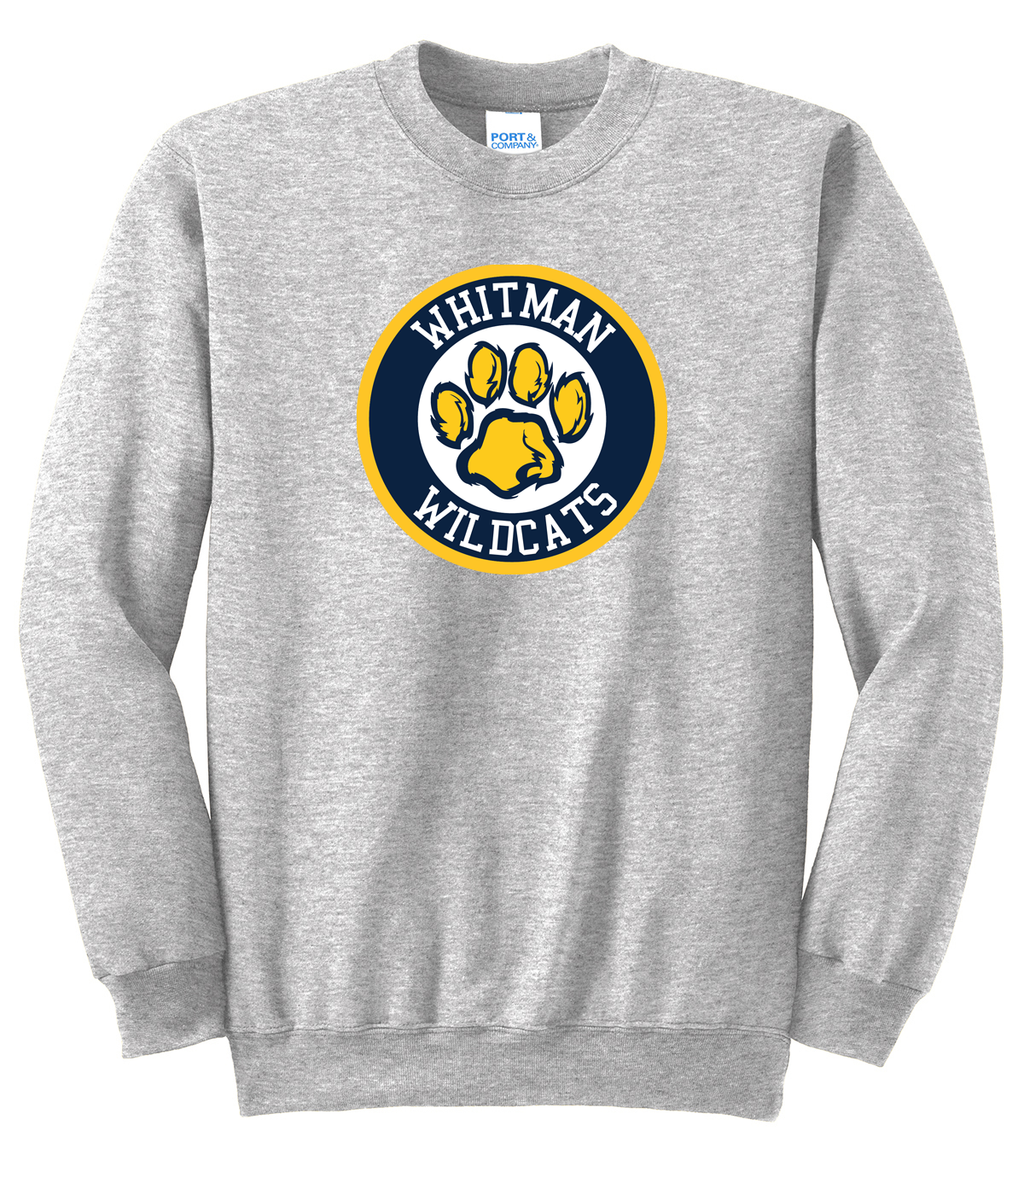 Whitman Wildcats Crew Neck Sweater